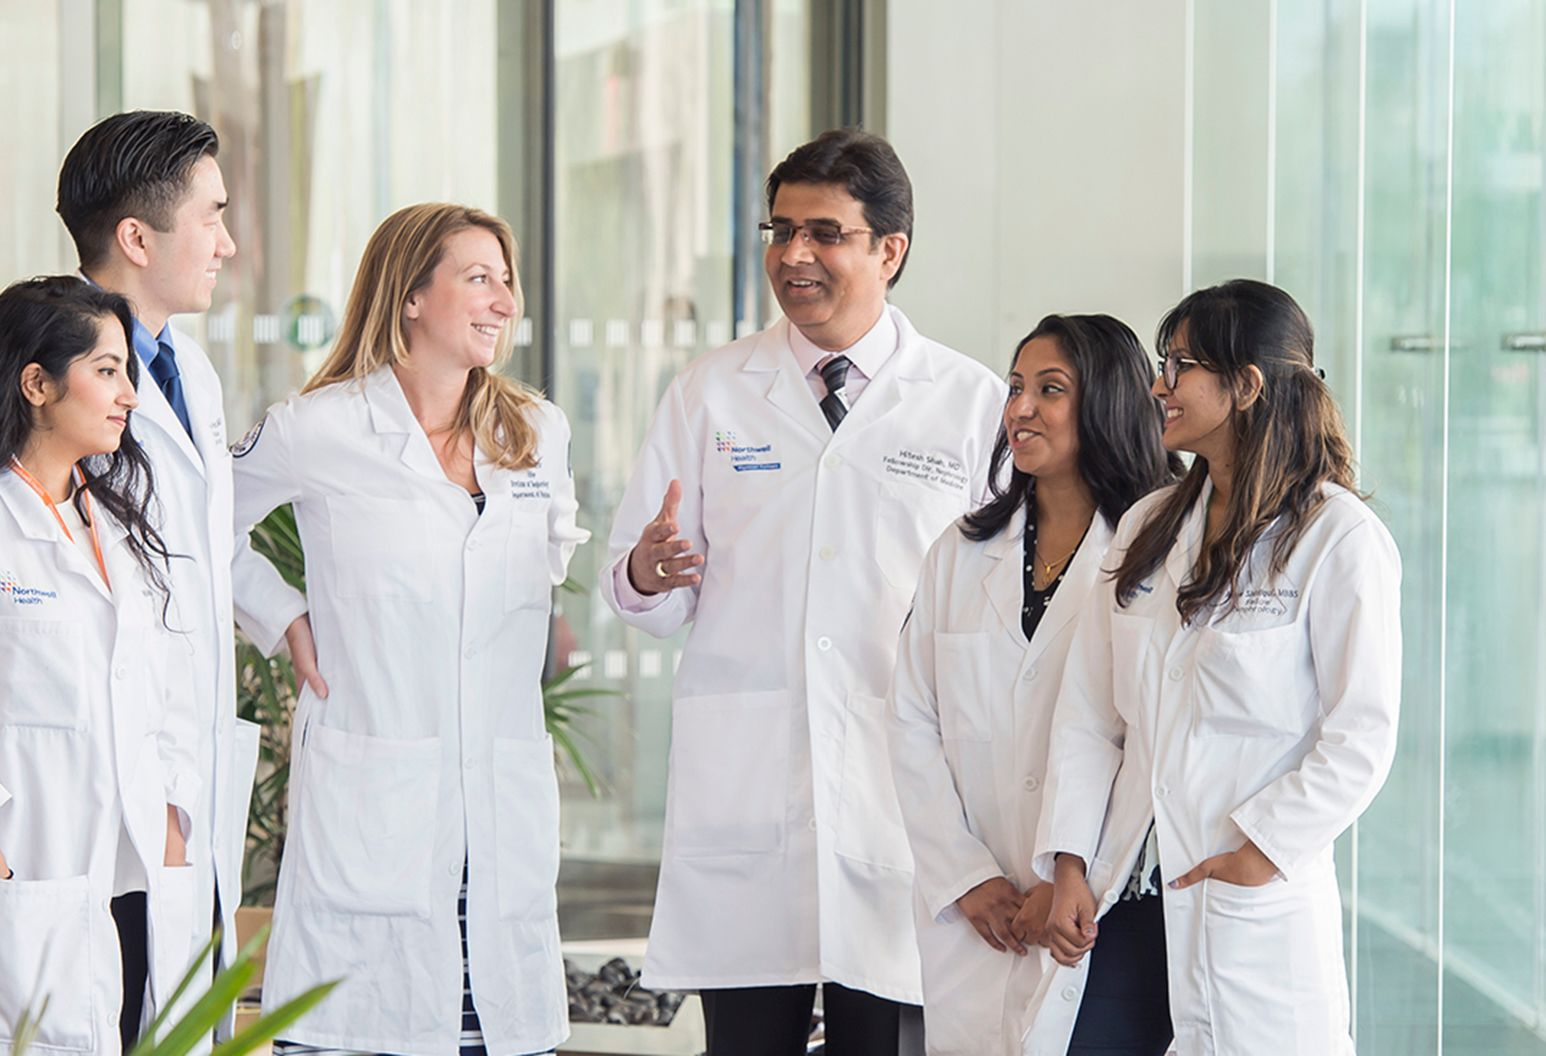 Six physicians wearing white lab coats having a positive conversation.